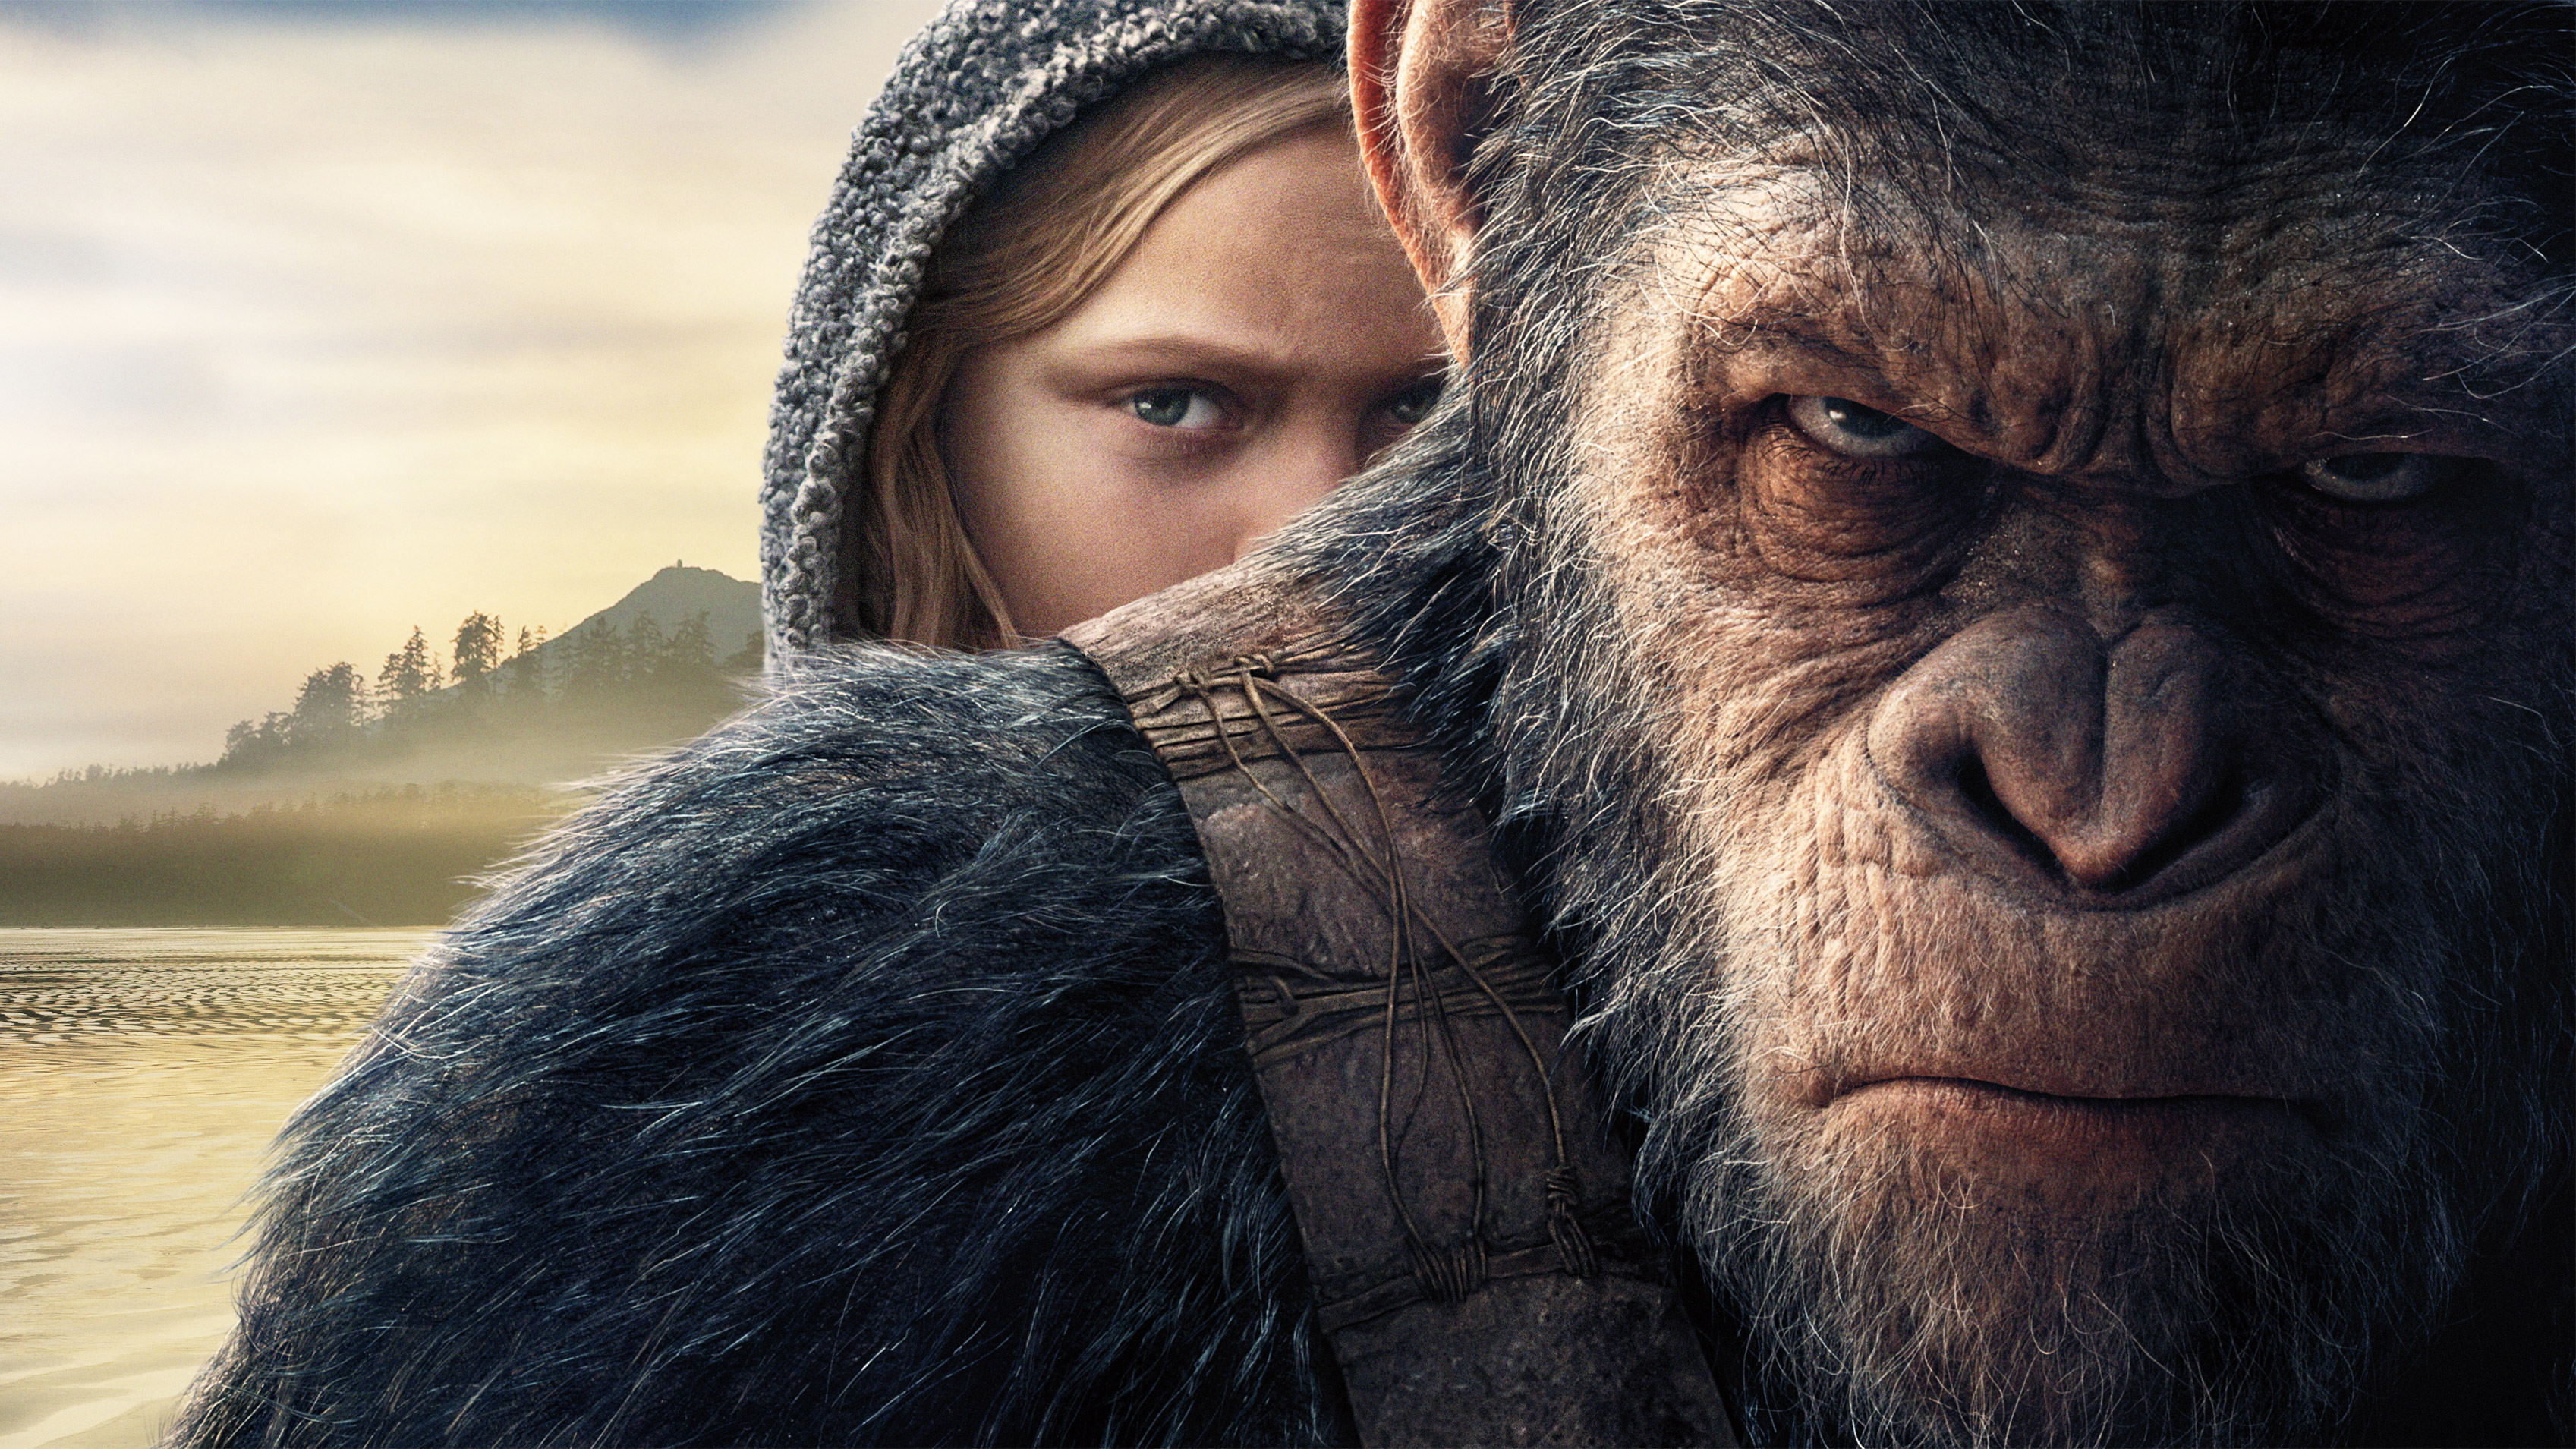 Planet Of The Apes Wallpaper: 2017 War For The Planet Of The Apes, HD Movies, 4k